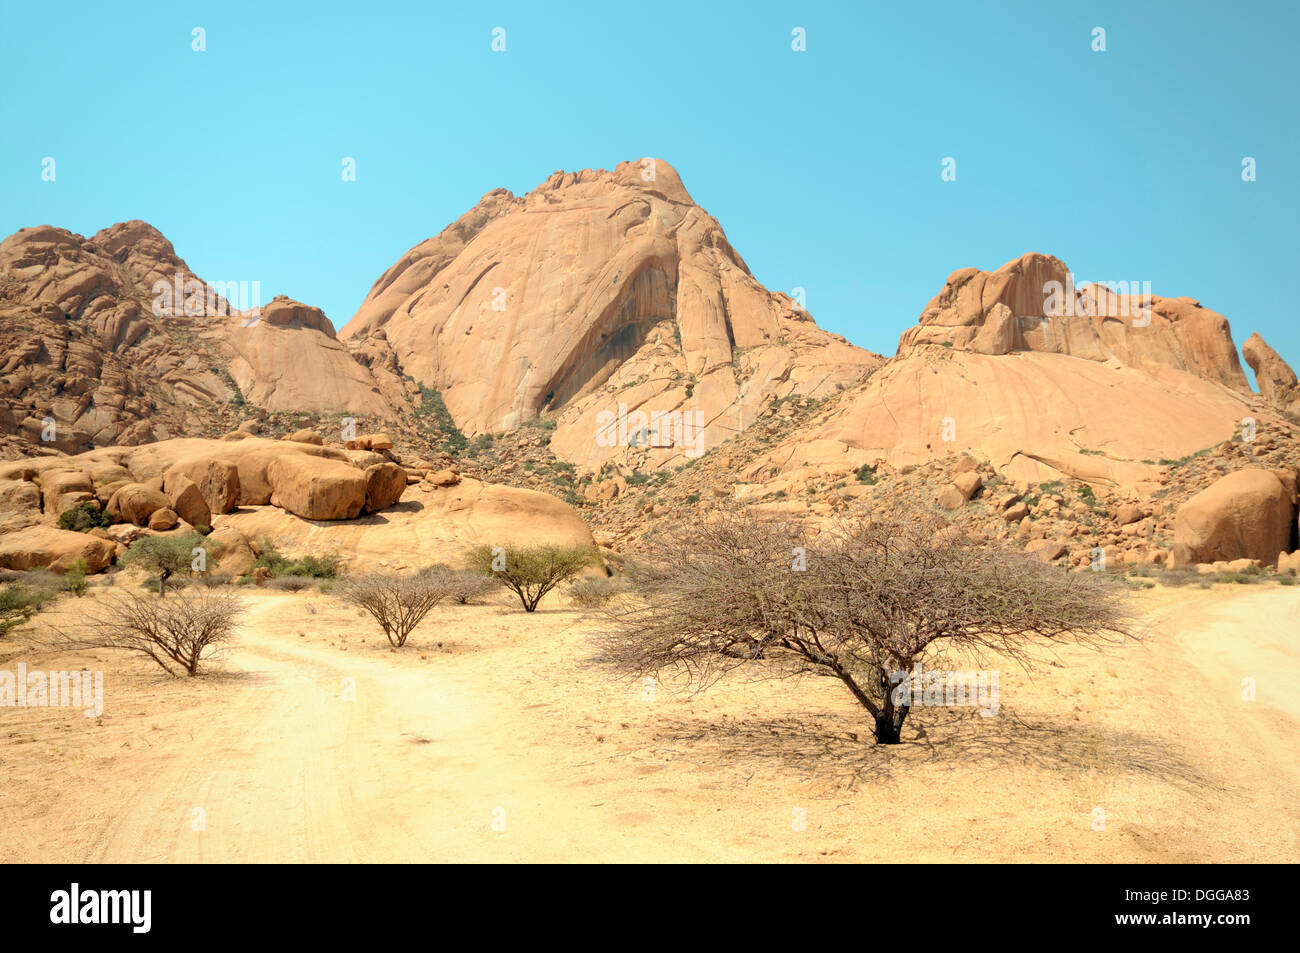 savannah landscape with granite rocks and spitzkoppe